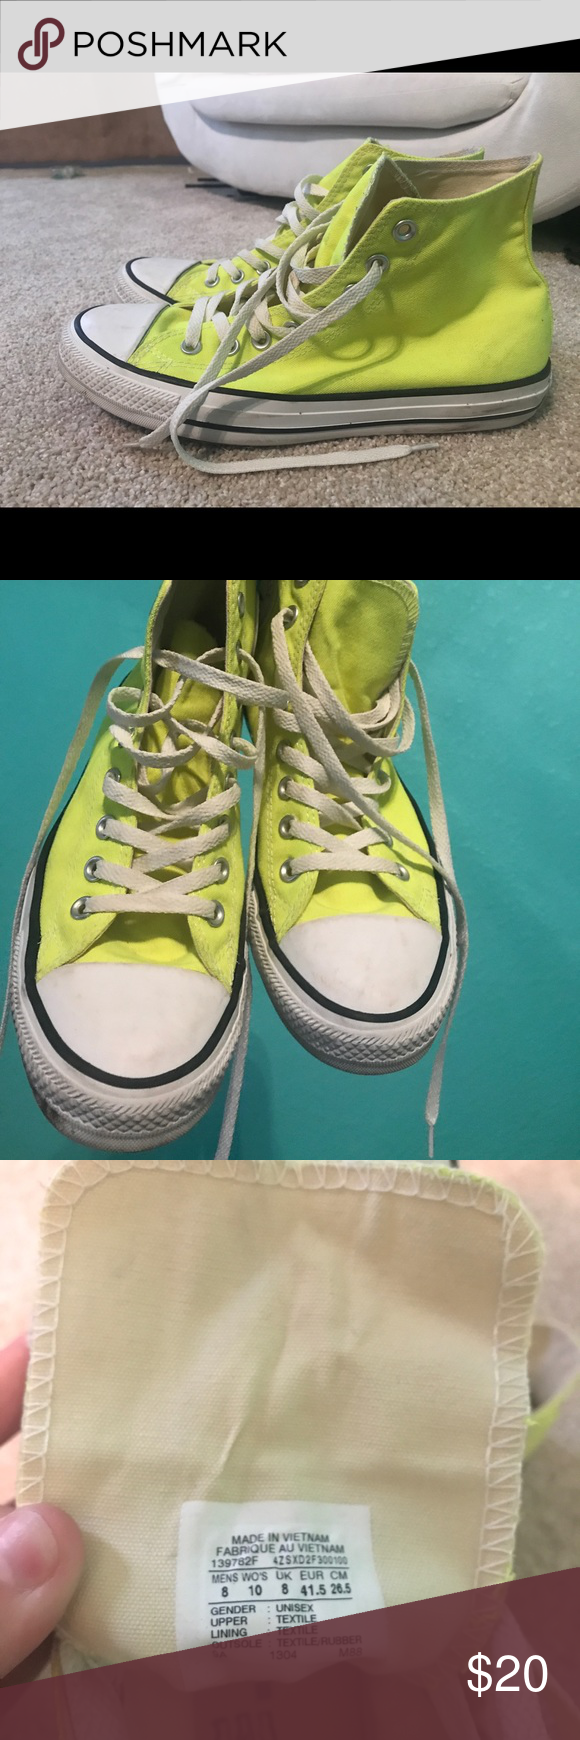 8b1f8d3553b7 Unisex Converse Chuck Taylor All Star Hi Sneakers Neon Yellow Laces are a  little dingy